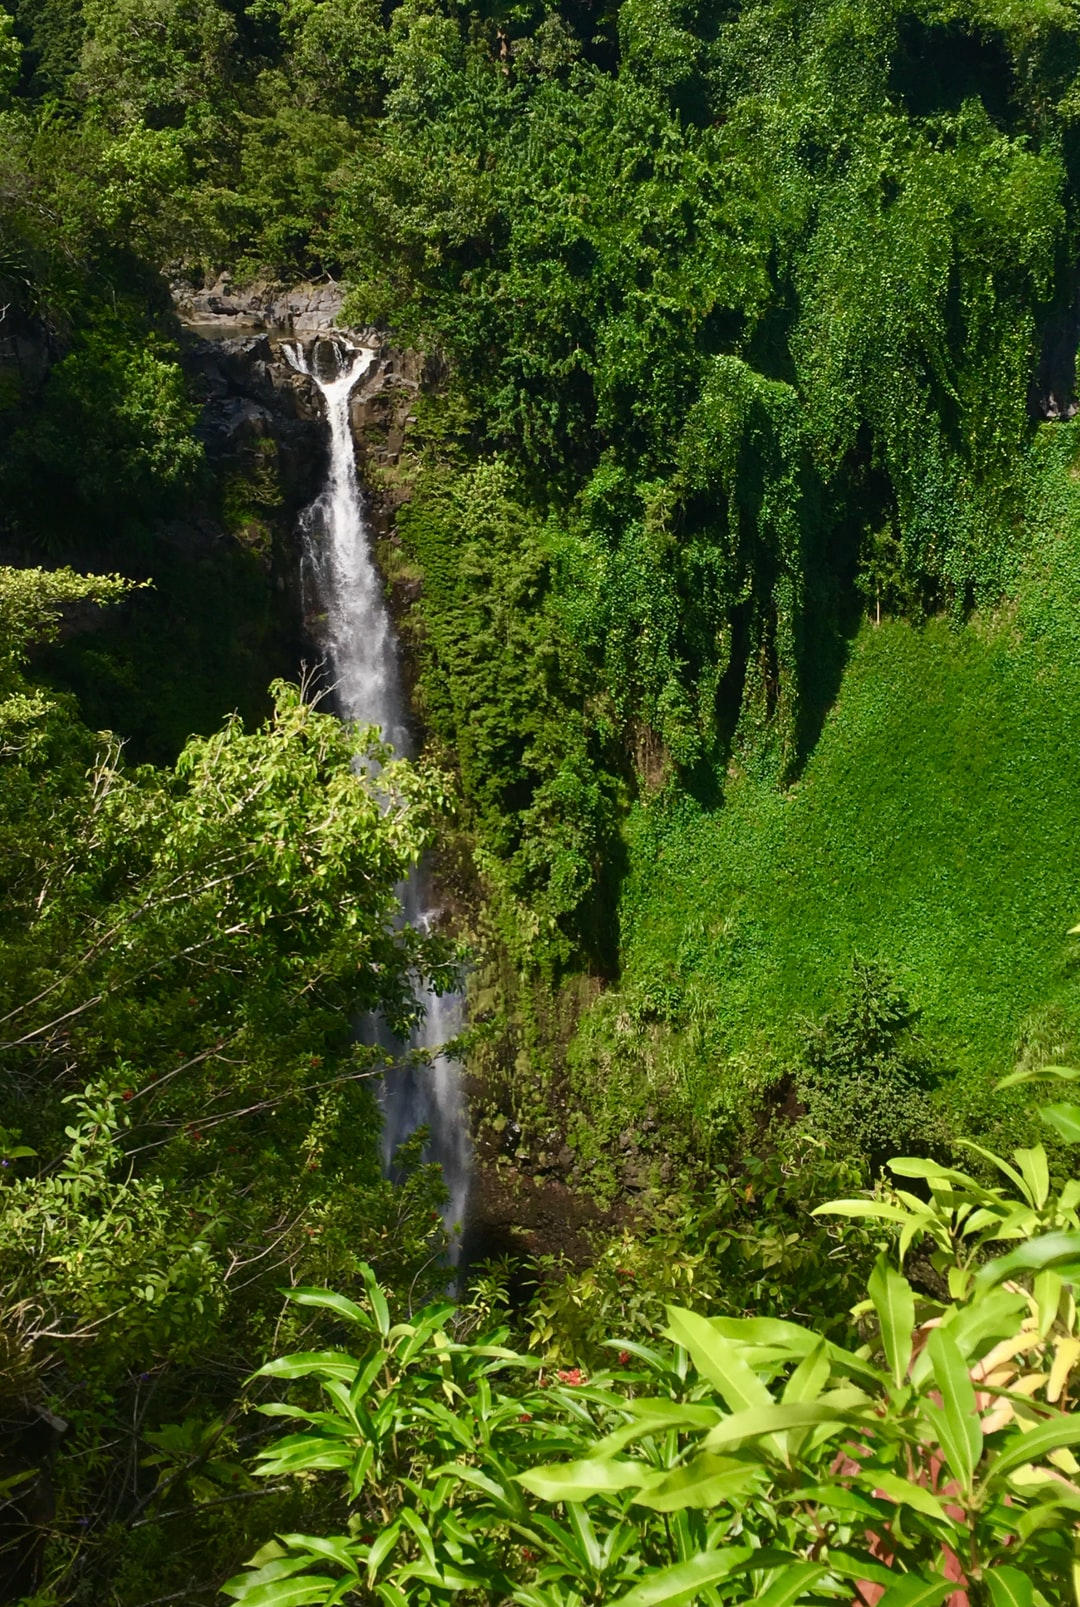 An easy 20 minute hike within the Haleakala National Park along the Pipiwai Trail (from the south eastern entrance) will lead you to the impressive Falls at Makahiku! For an even more majestic view, keep going for another 30-45 minutes to the incredible Waimoku Falls!